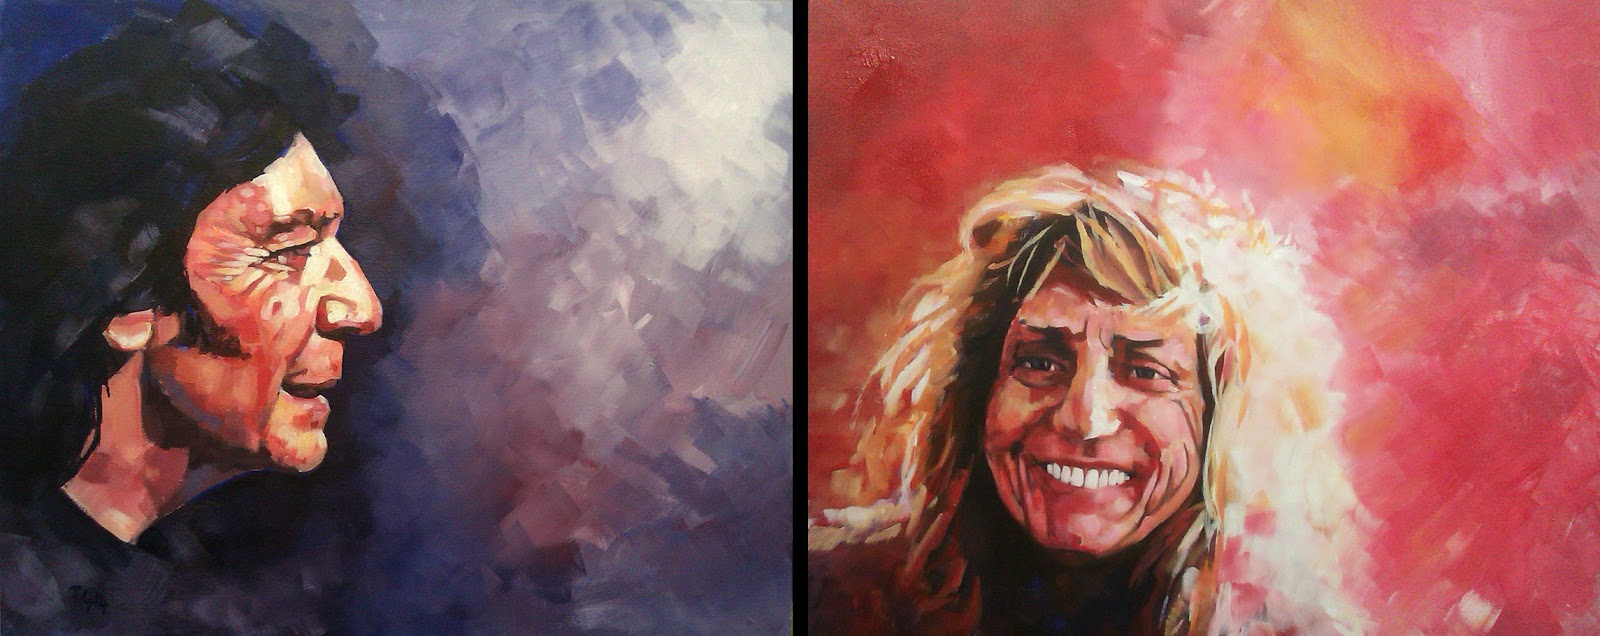 Steve Hackett and David Coverdale painted by Anthony Greentree